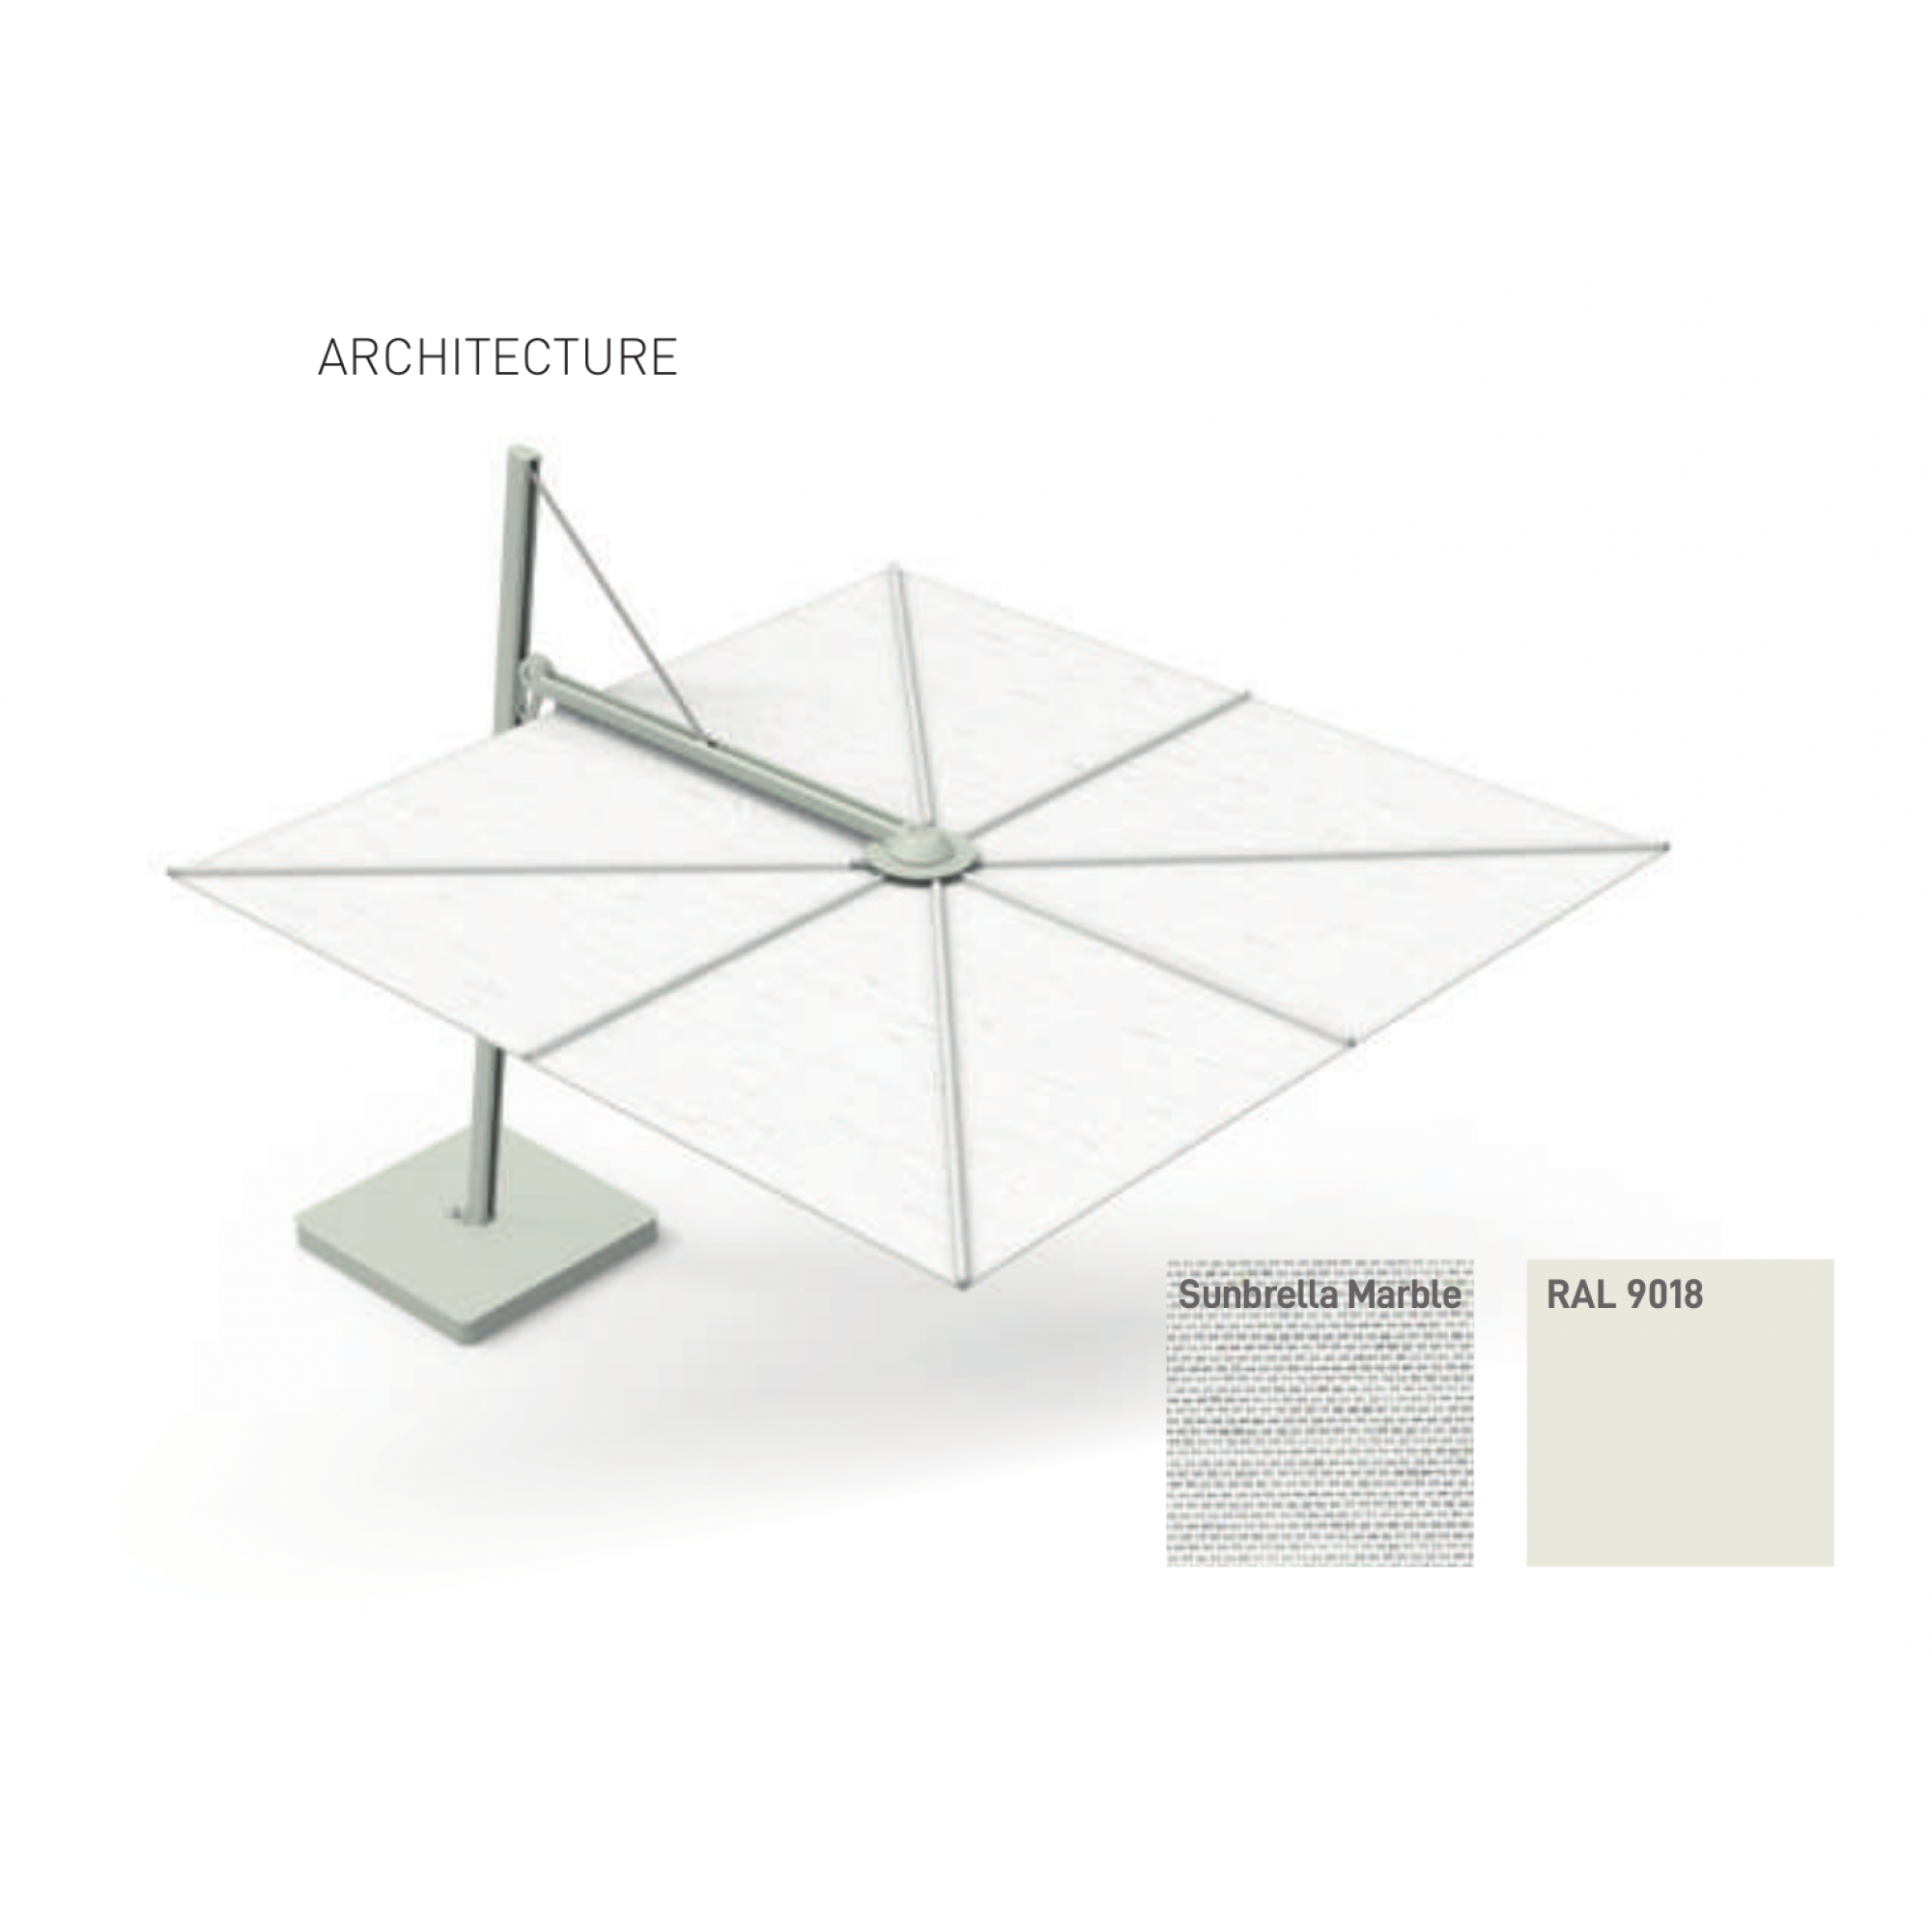 SPECTRA UX ARCHITECTURE, by UMBROSA